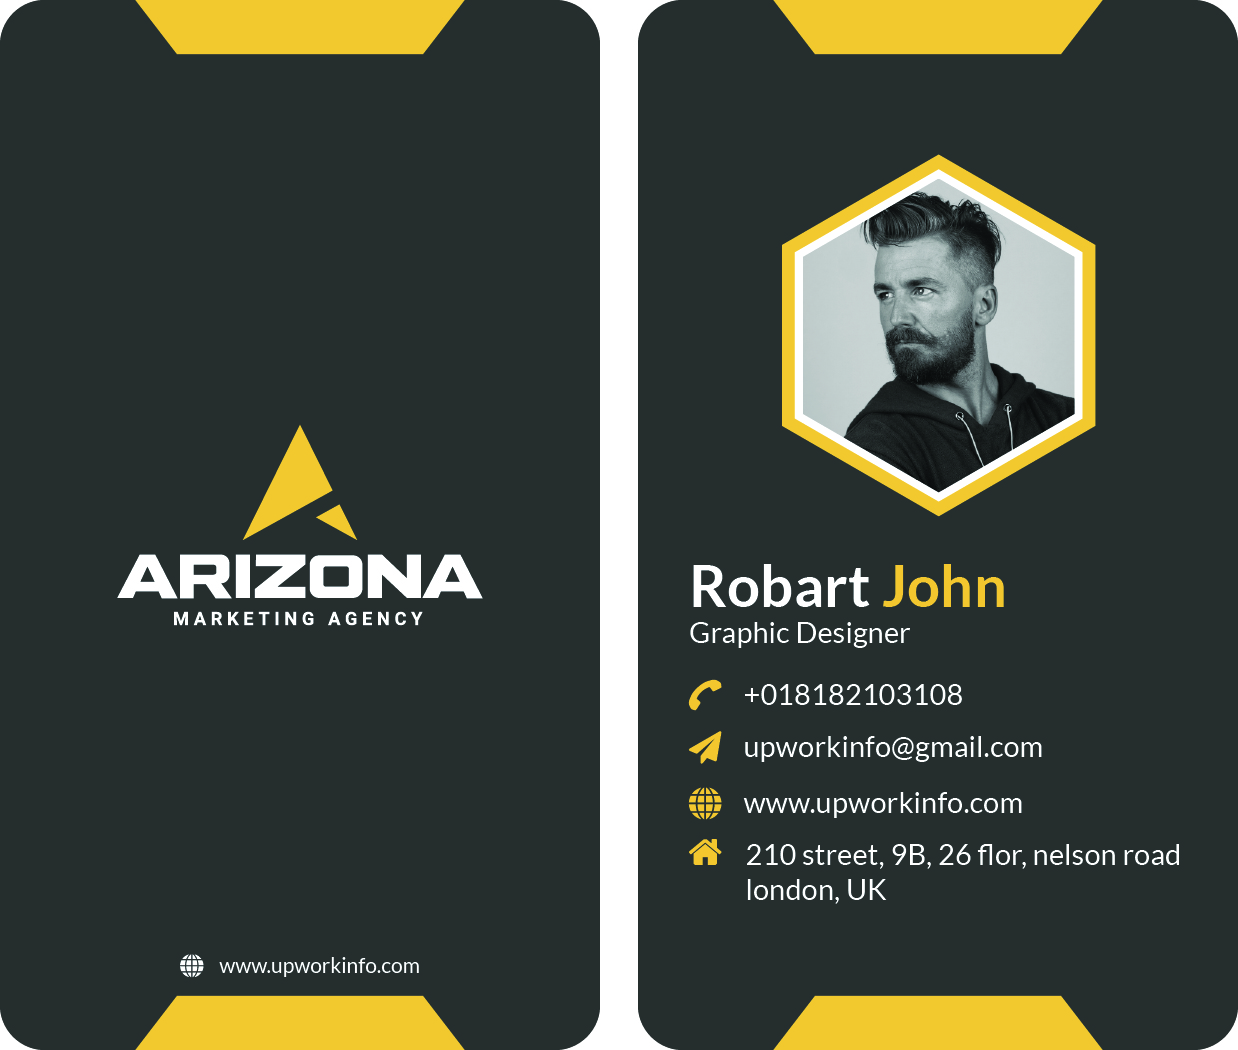 I will be professional business card and stationery